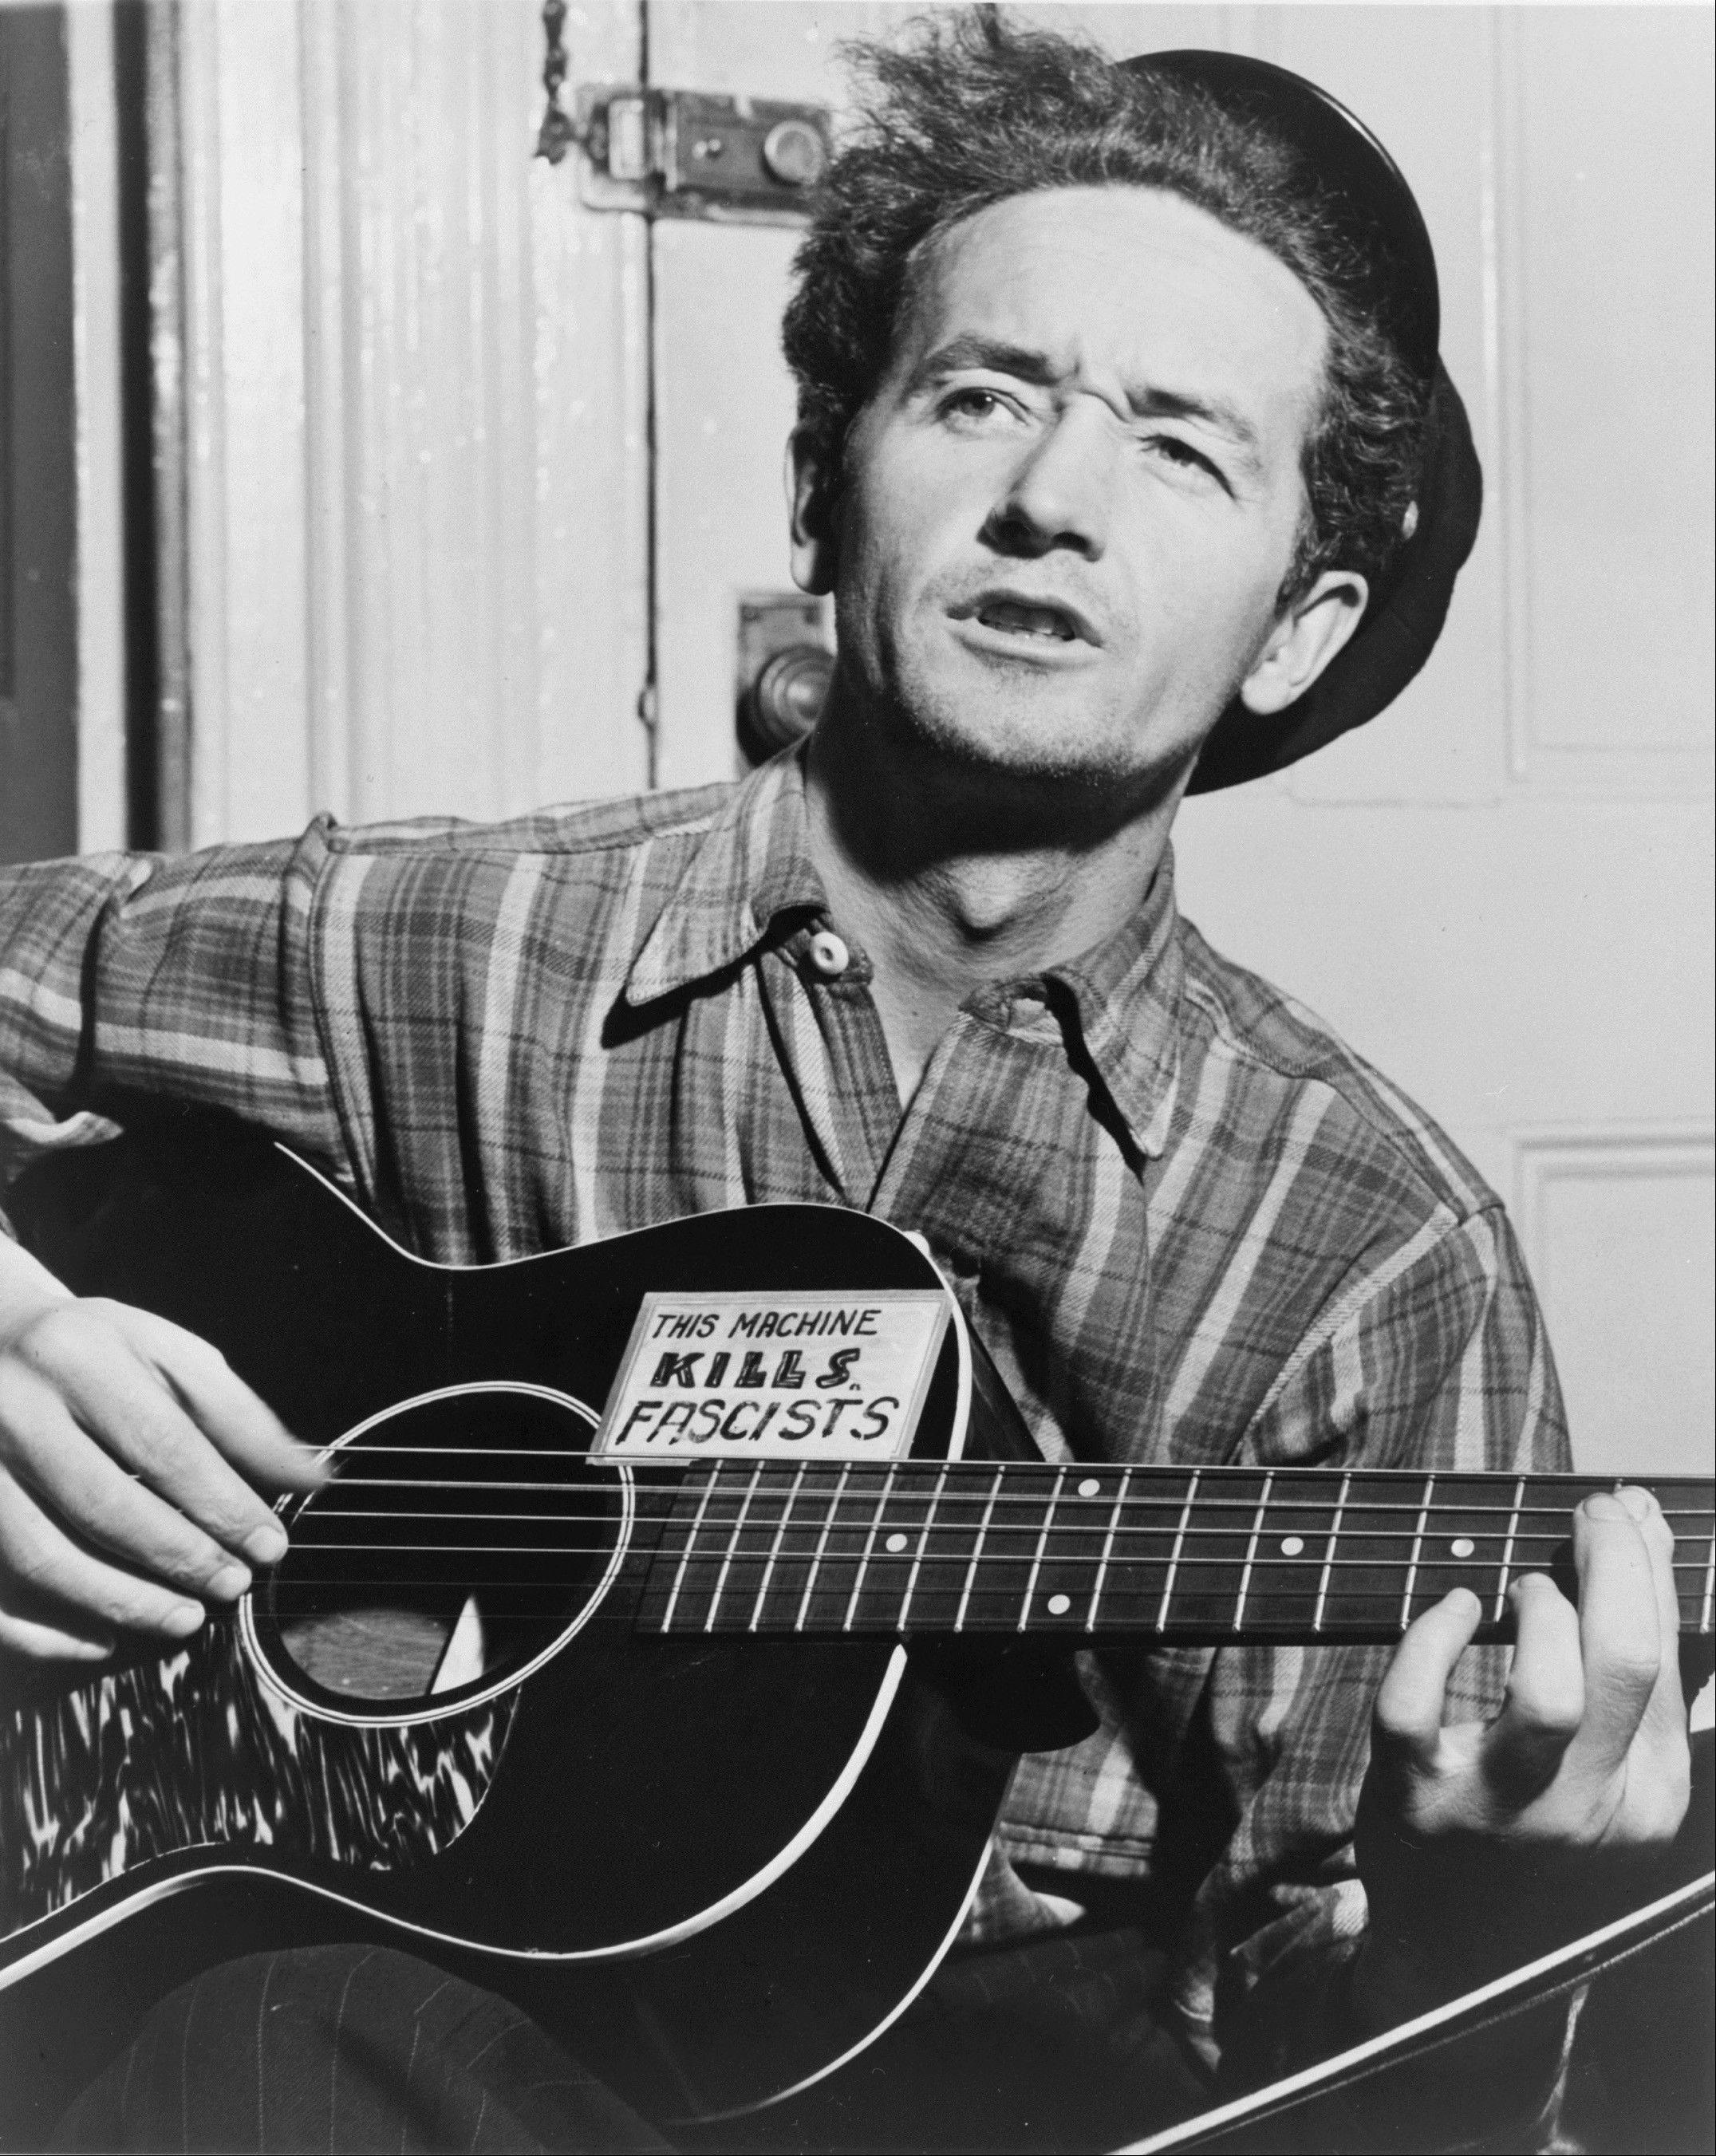 Oklahoma-born folk singer Woody Guthrie. The new Woody Guthrie Center features many interactive exhibits chronicling the life and work of Guthrie and is home to the folk singer's archives.